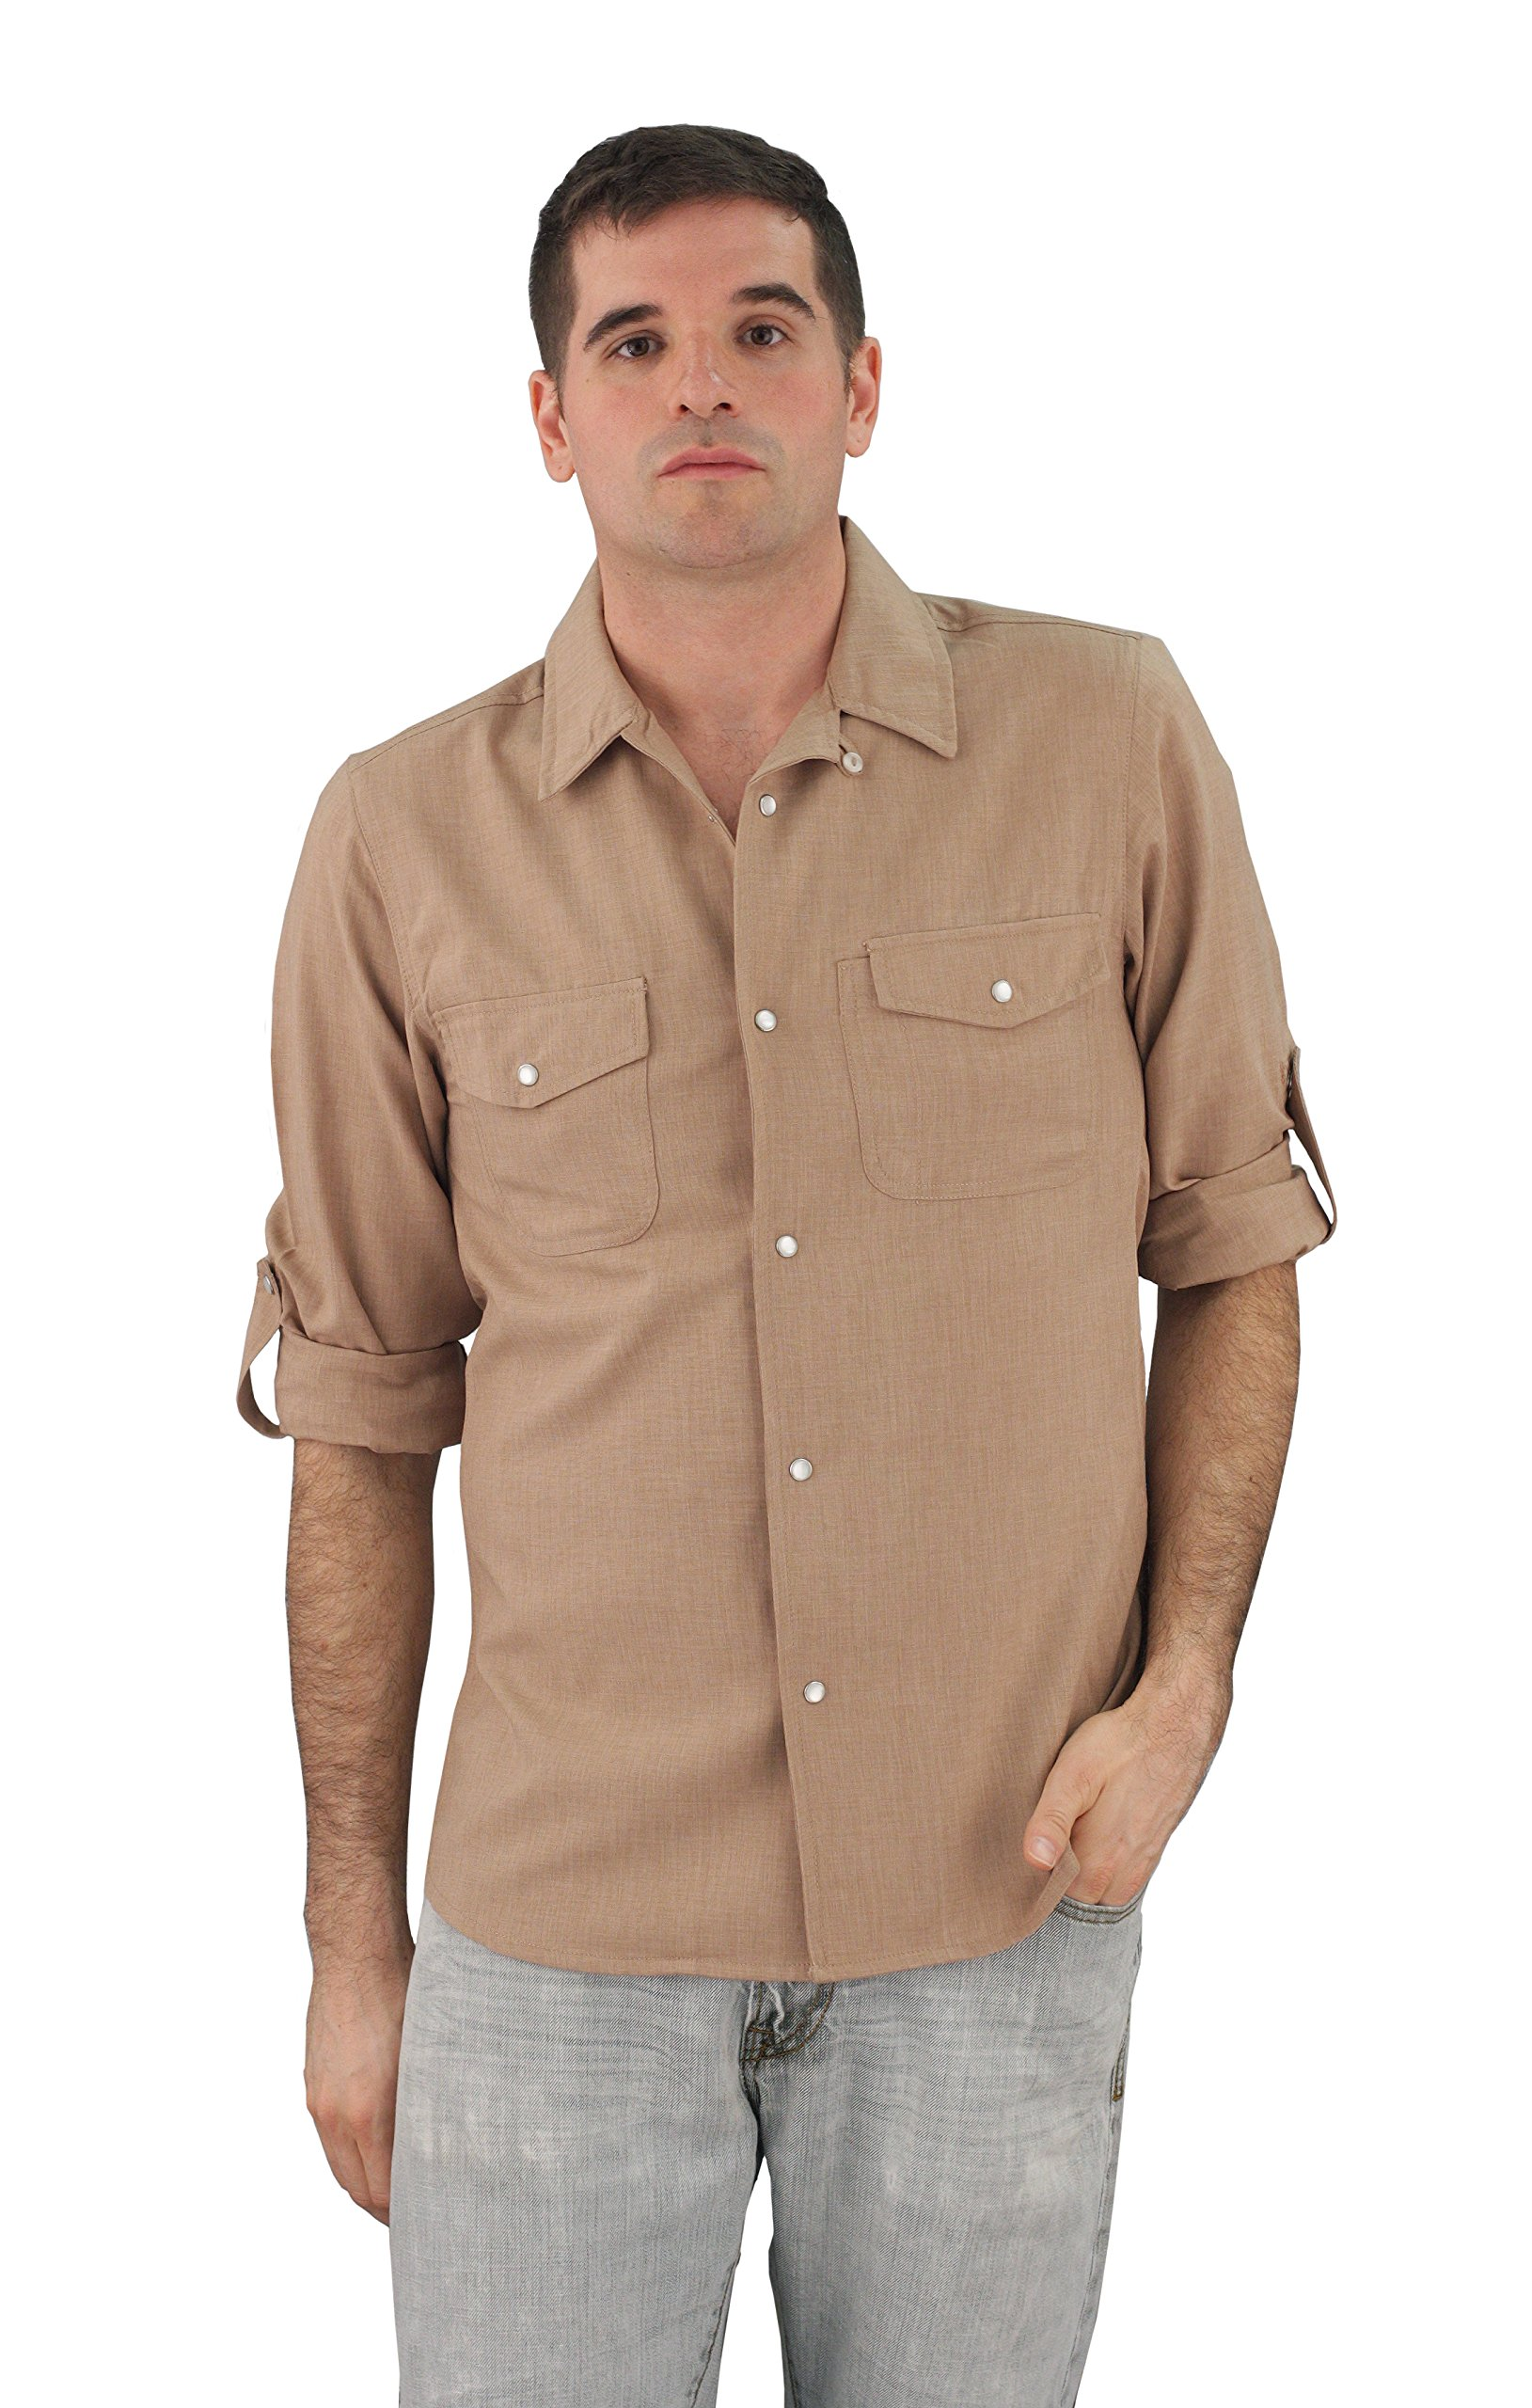 ASD Living Zanzibar Long Sleeve Dry Fit Waitstaff Server Shirt, Large, Almond by ASD Living